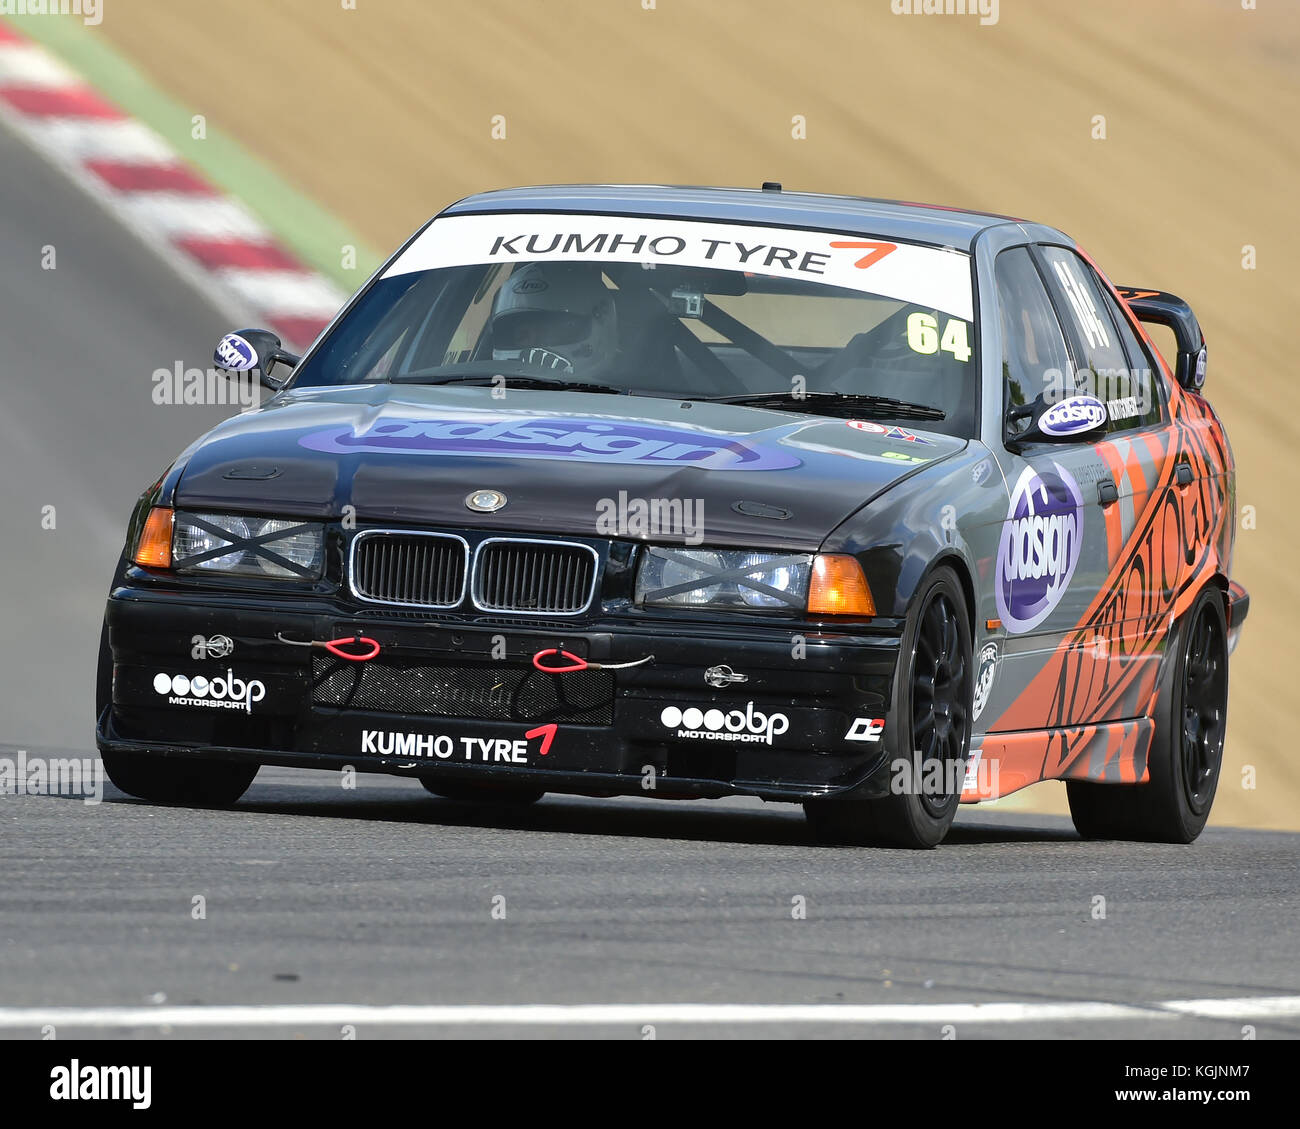 2000 Bmw 323 Coupe: Bmw 323i Stock Photos & Bmw 323i Stock Images